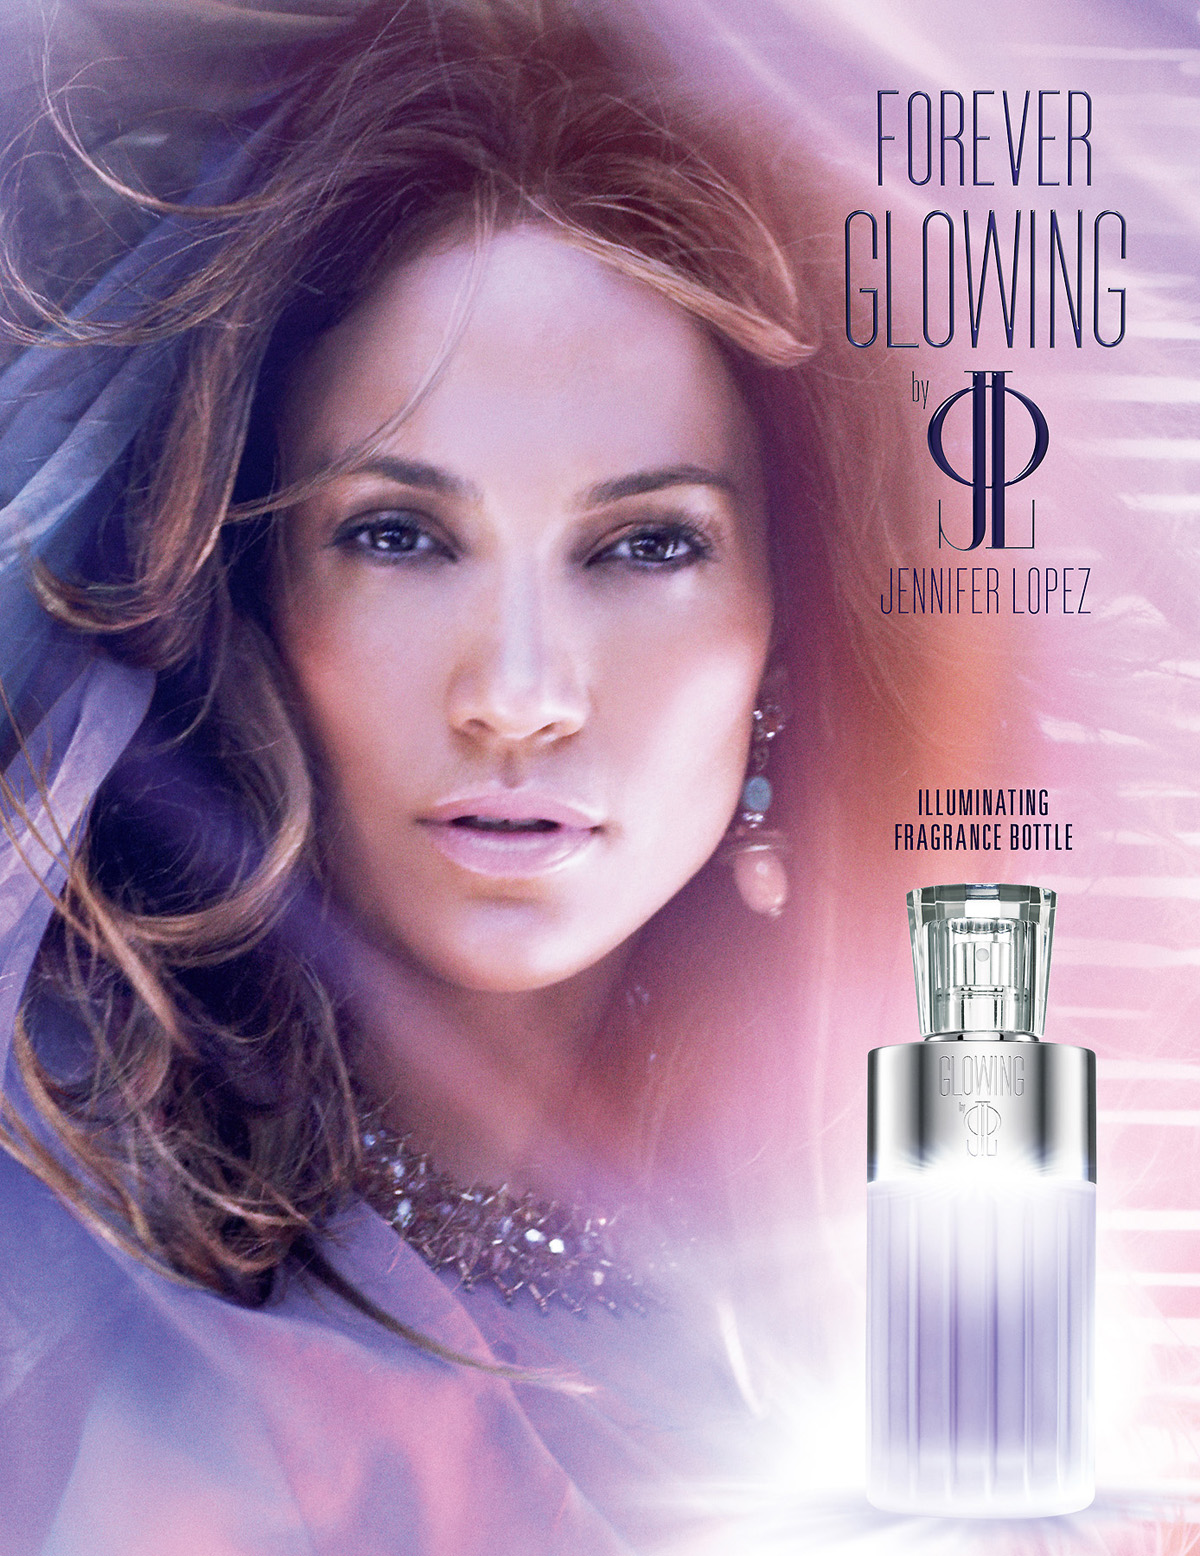 (Photo: Jennifer Lopez/Forever Glowing)